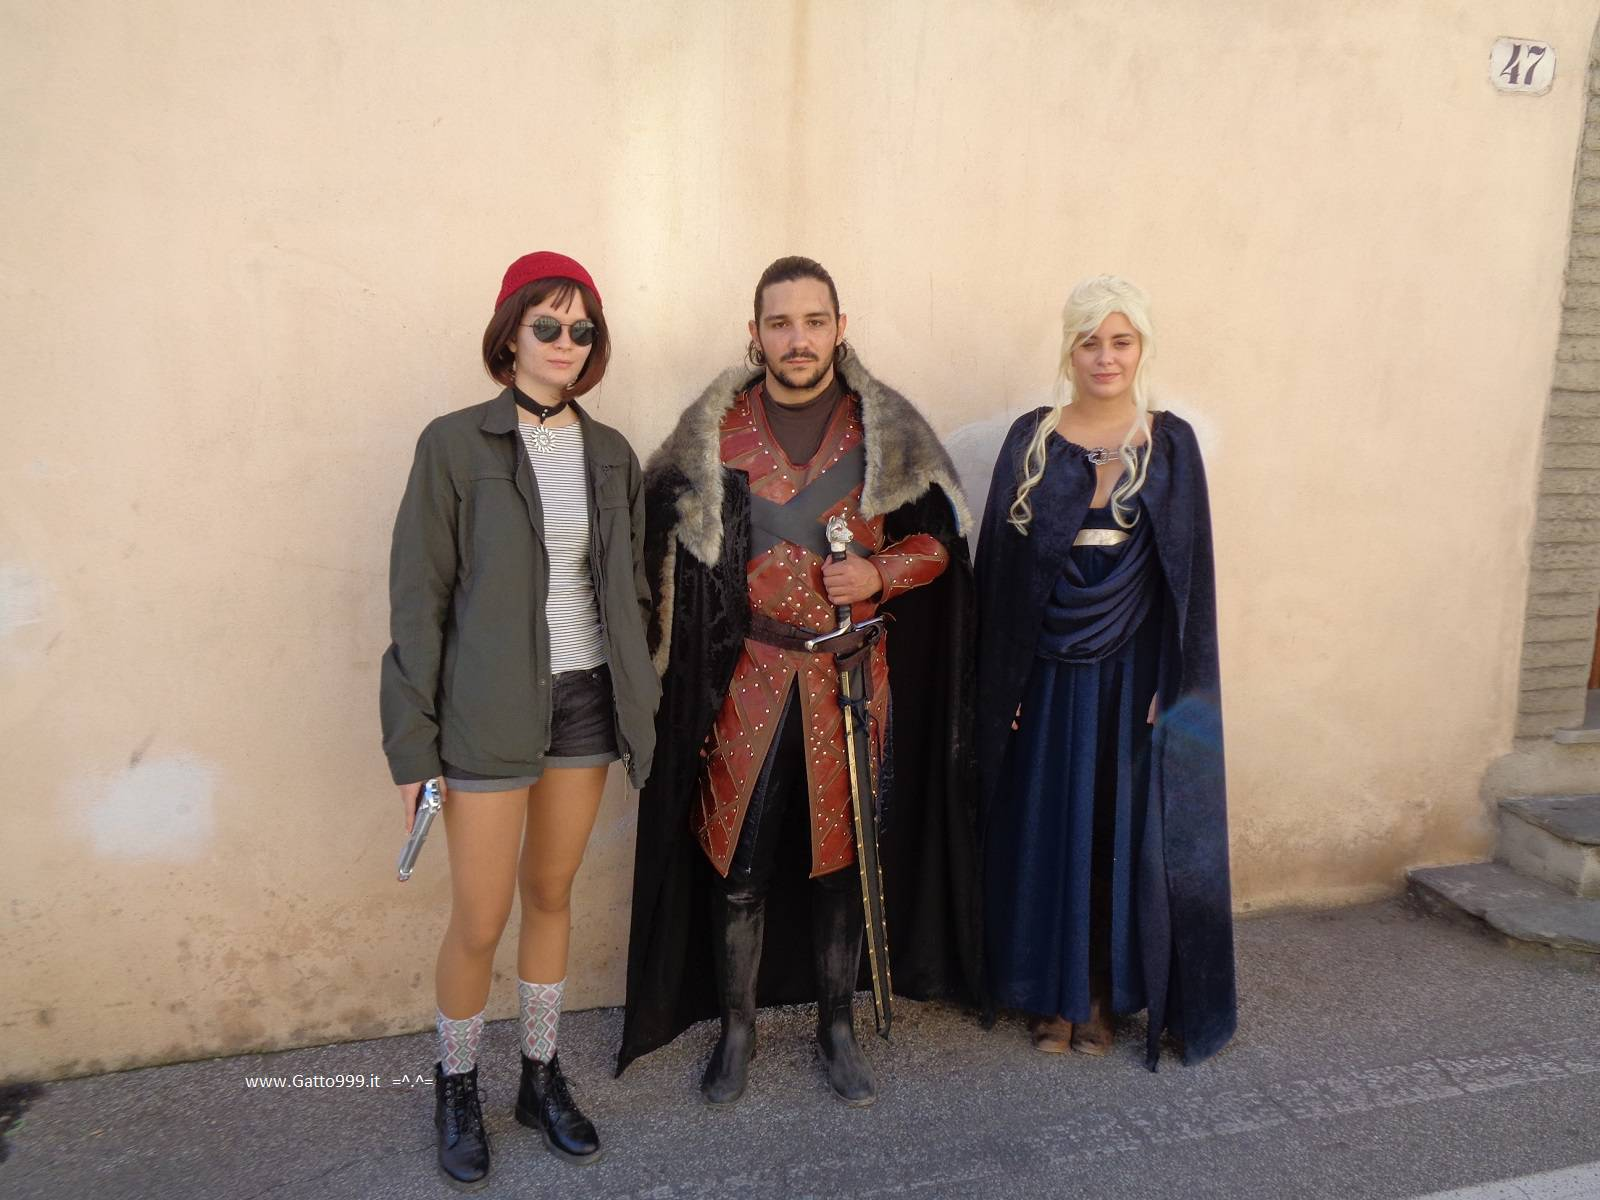 Cosplay Games of Throne